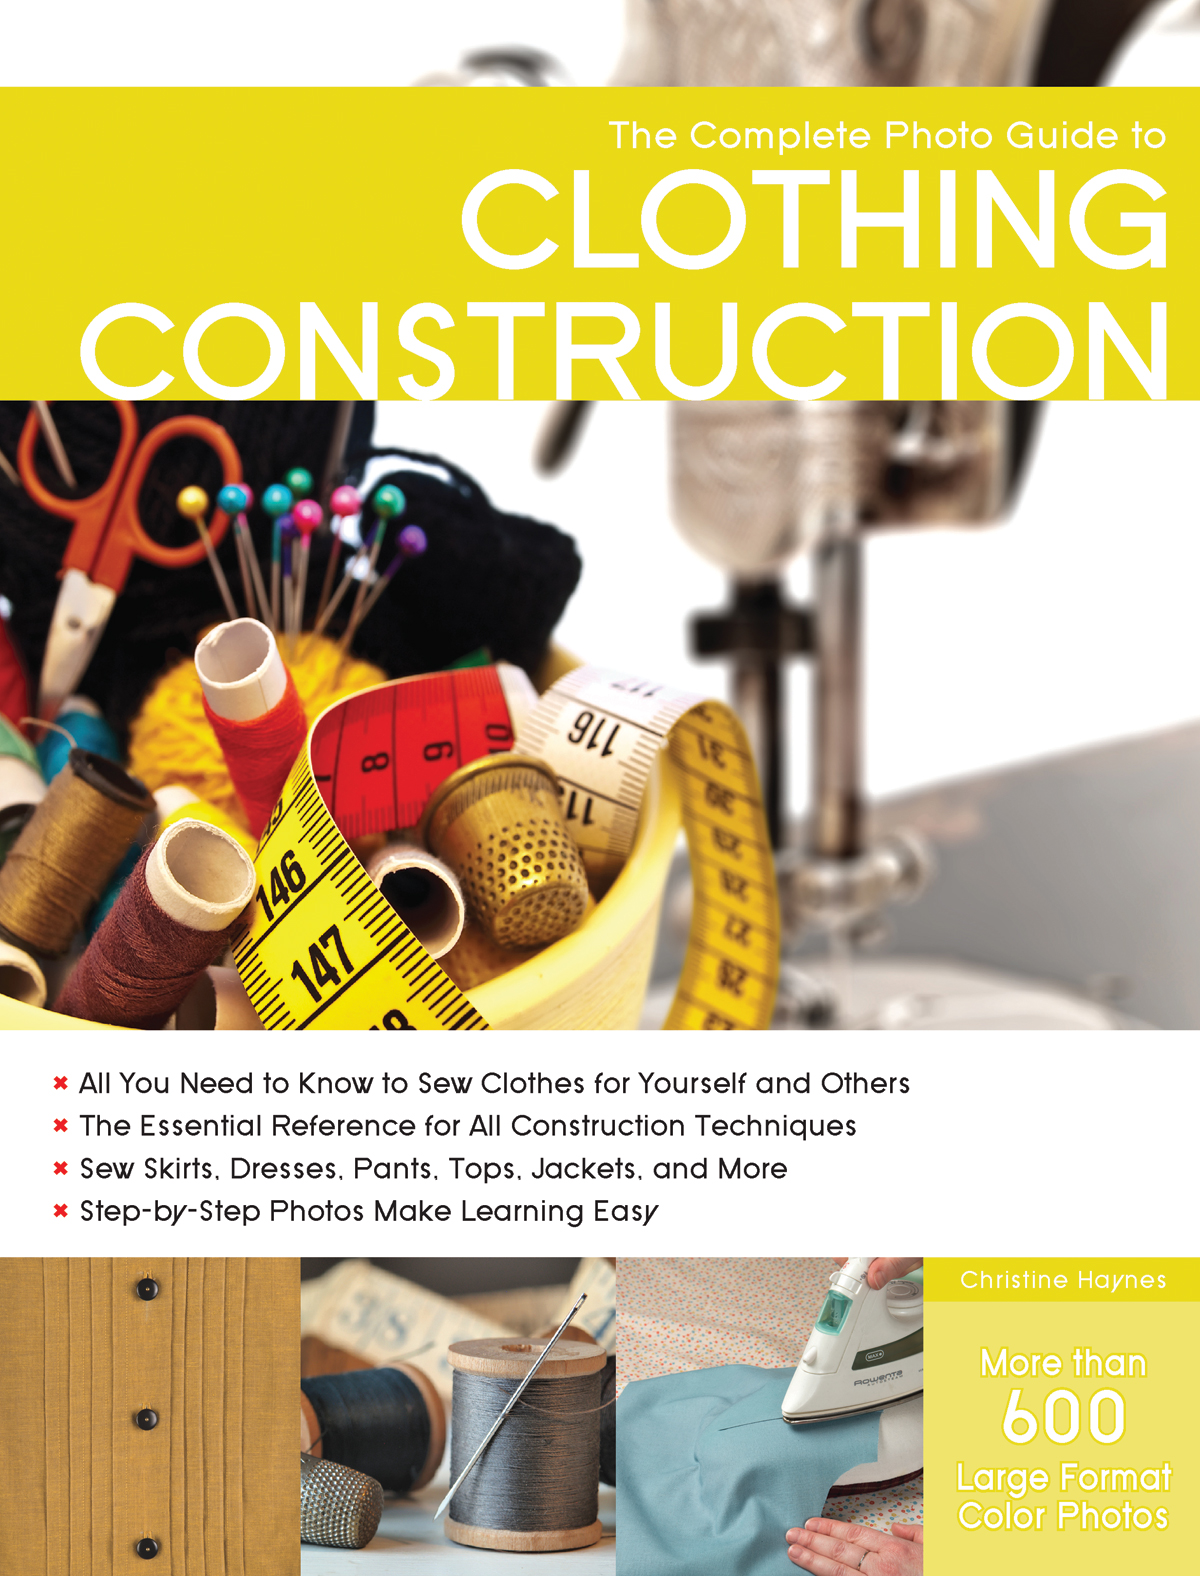 Christine Haynes's new book The Complete Photo Guide to Clothing Construction